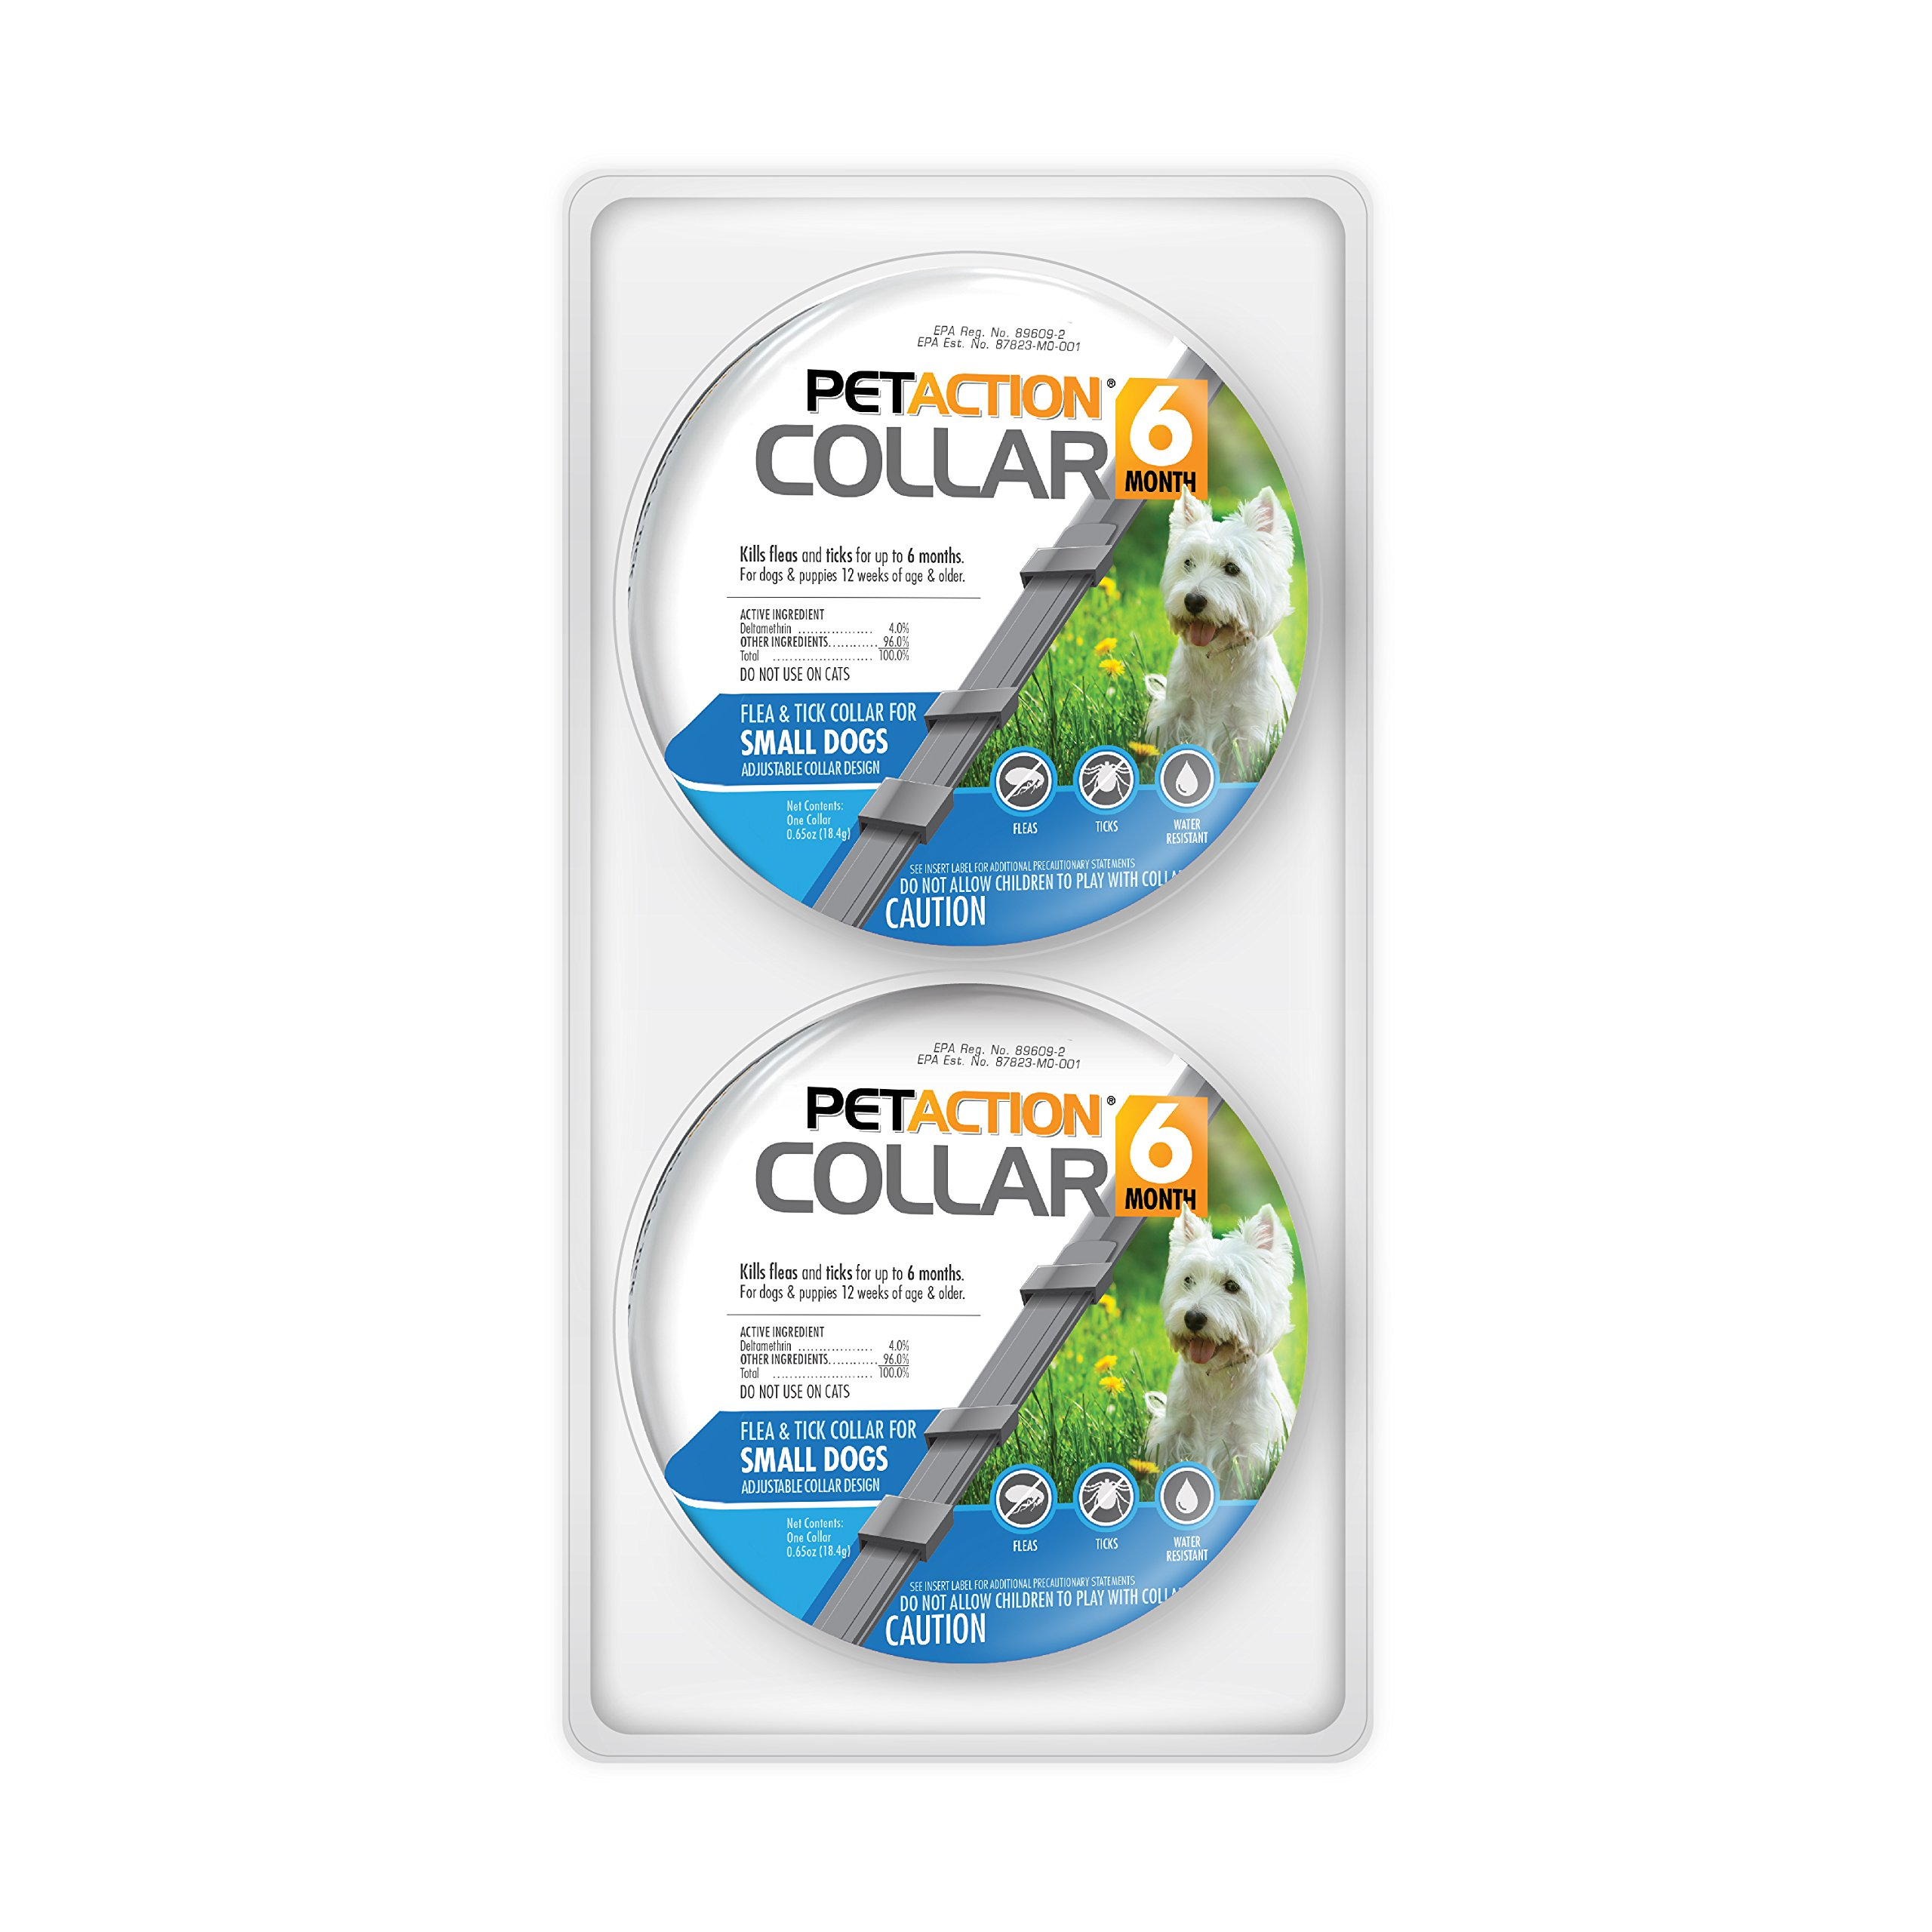 Pet Action Six Month Collar Fleas Ticks, Small Dogs, 2 Pack by Pet Action (Image #1)